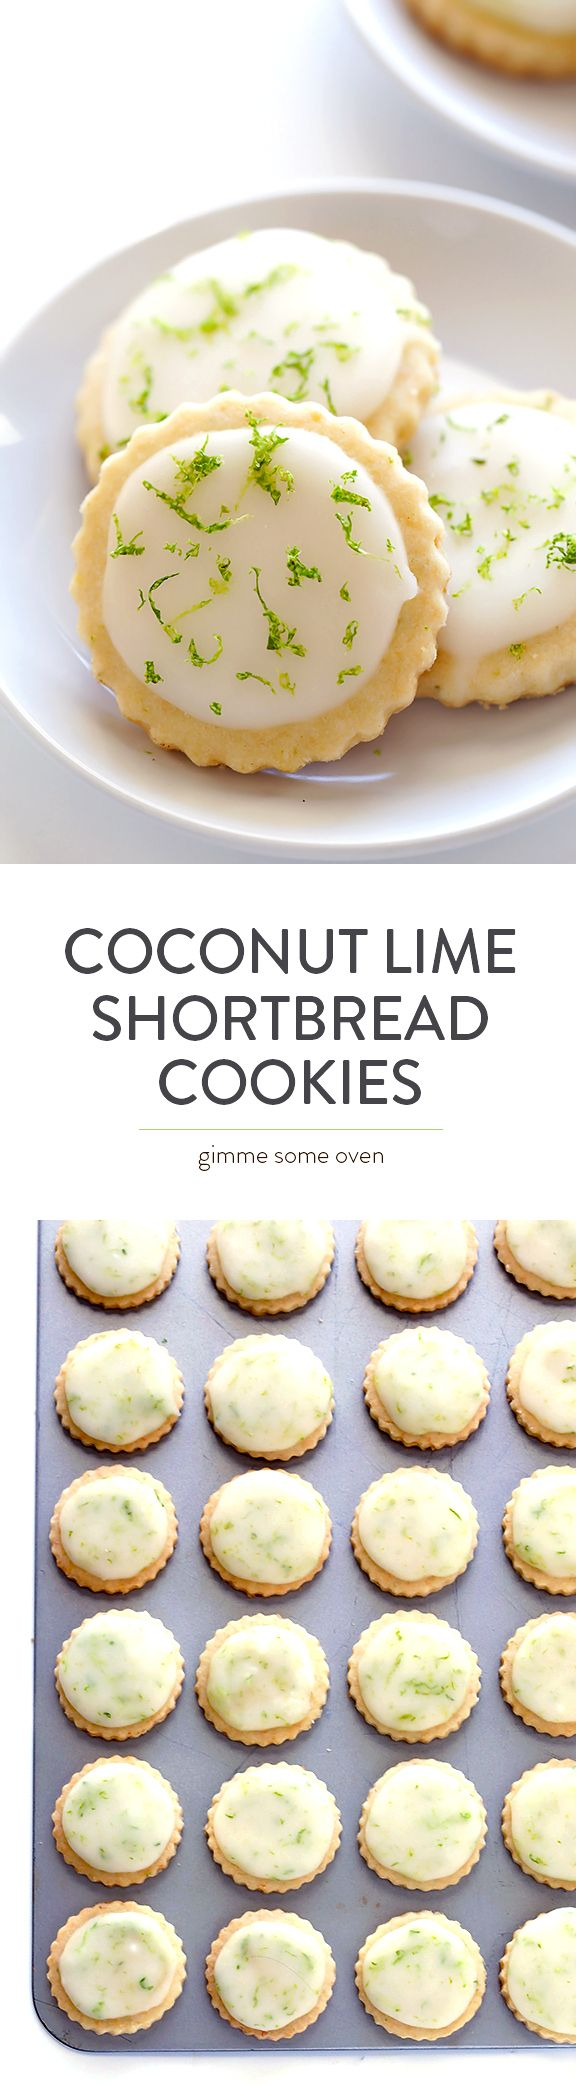 Coconut Lime Shortbread Cookies - Full of fresh lime, coconut, and buttery flavors, and topped with a light lime glaze. One of my all-time favorite cookie recipes!